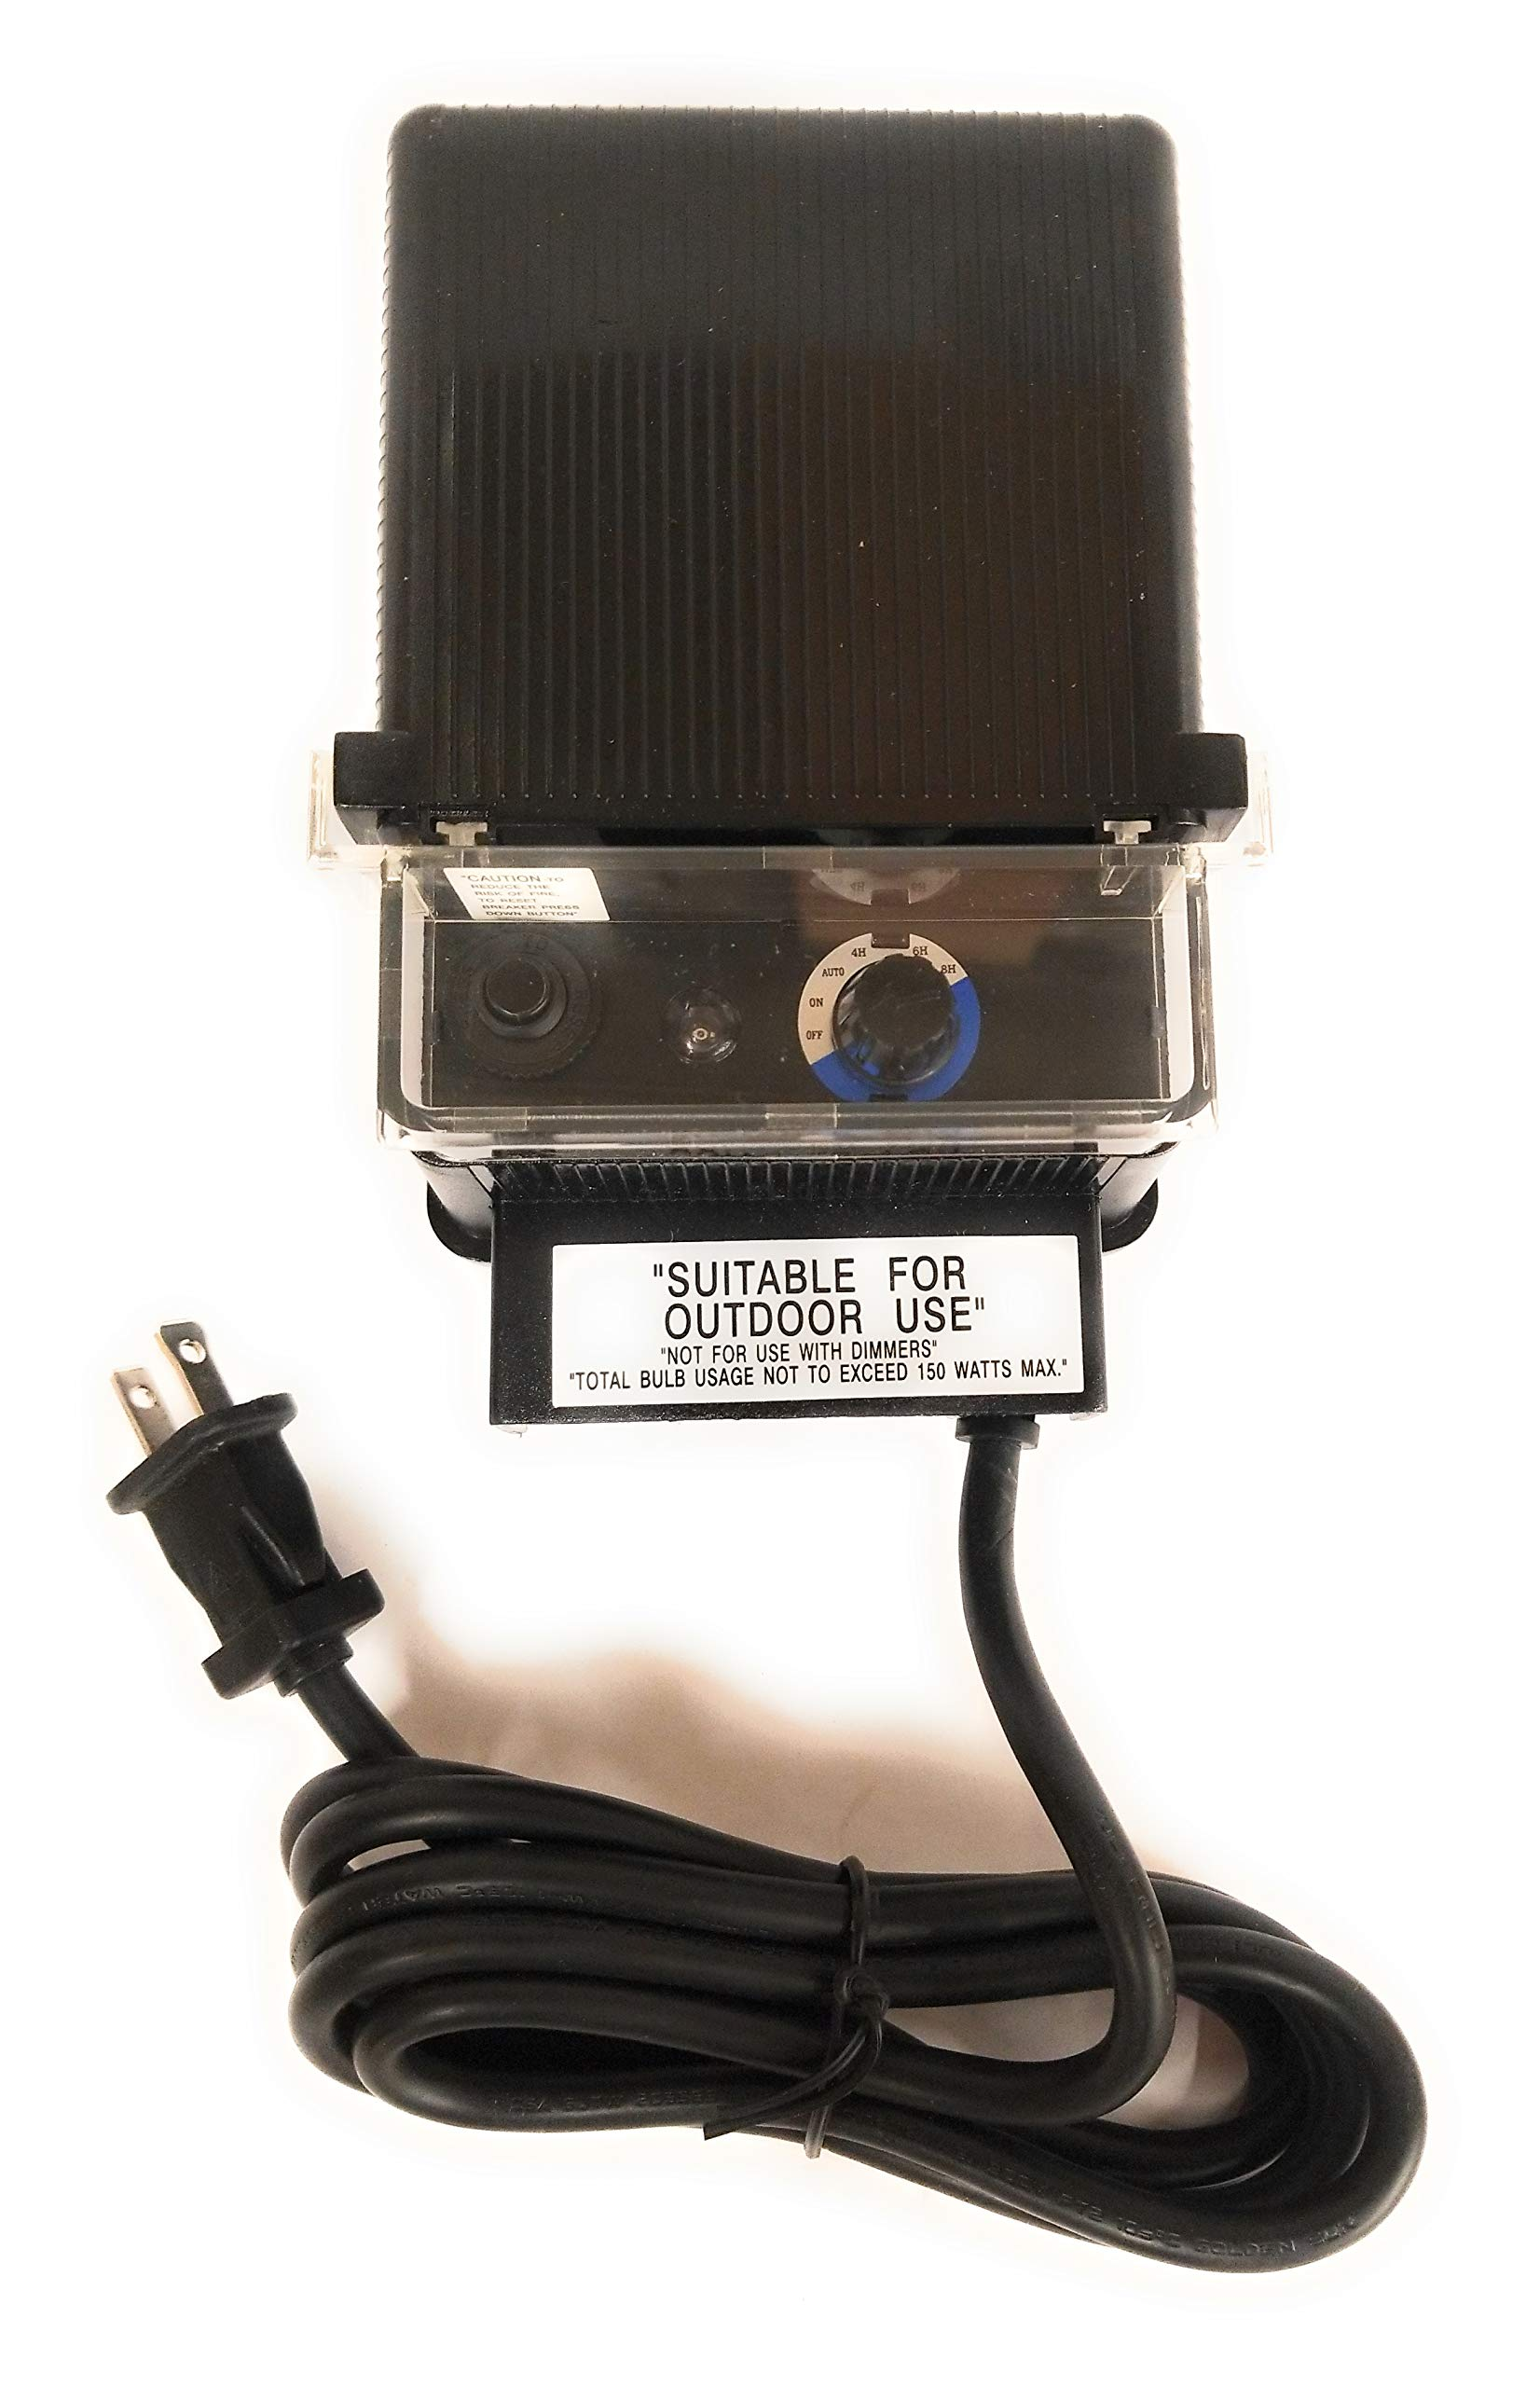 150W 12V Landscape Transformer with Photocell and Timer